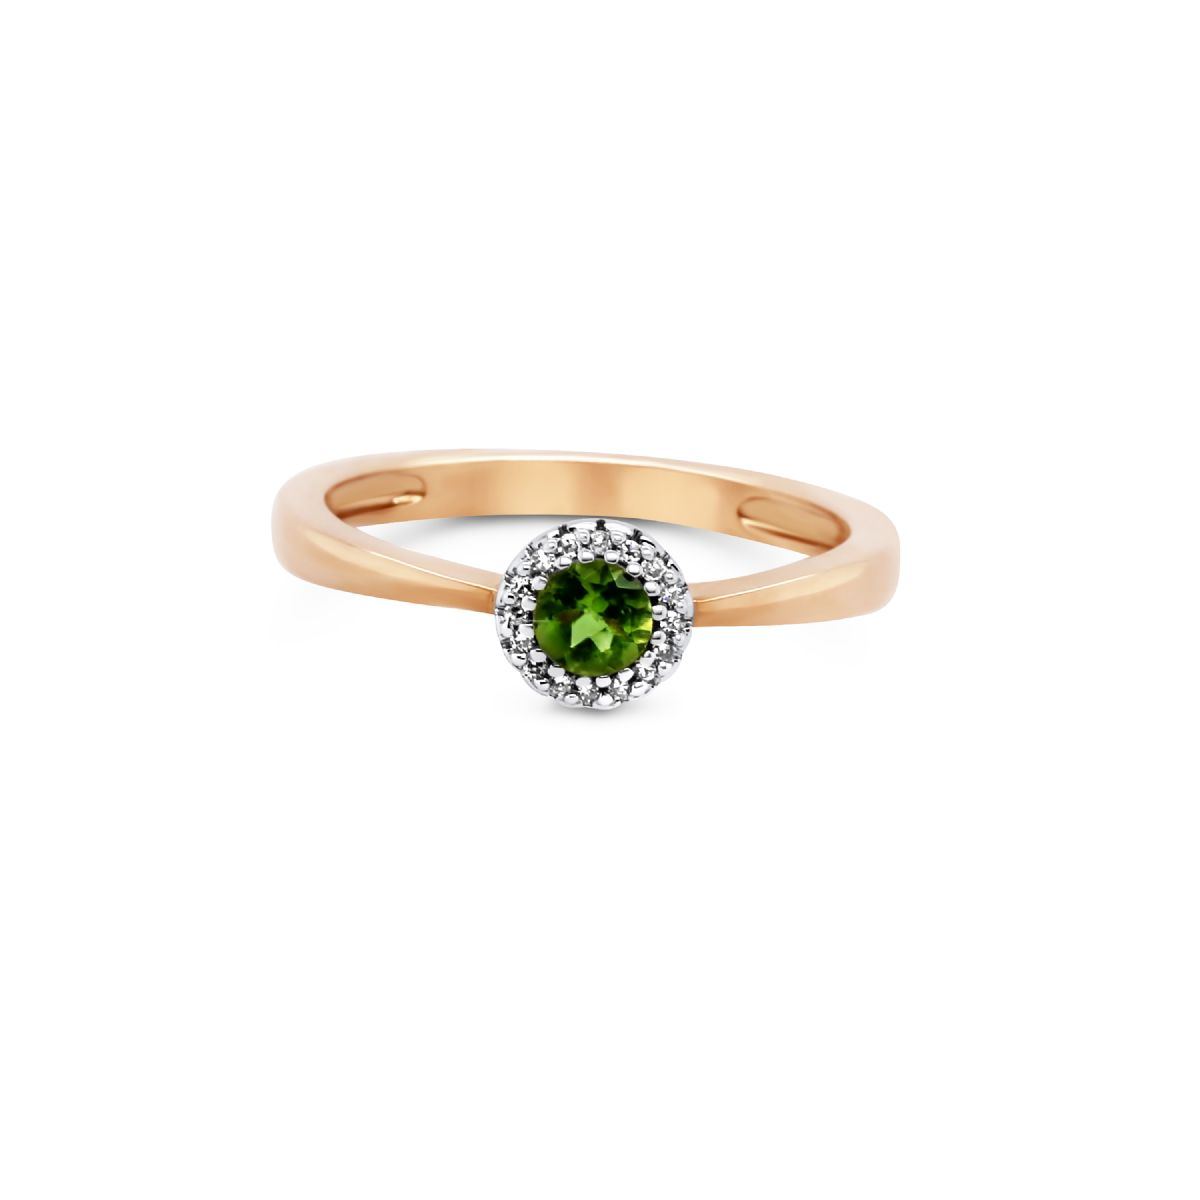 9k gold, diamond and peridot ring -  Ring